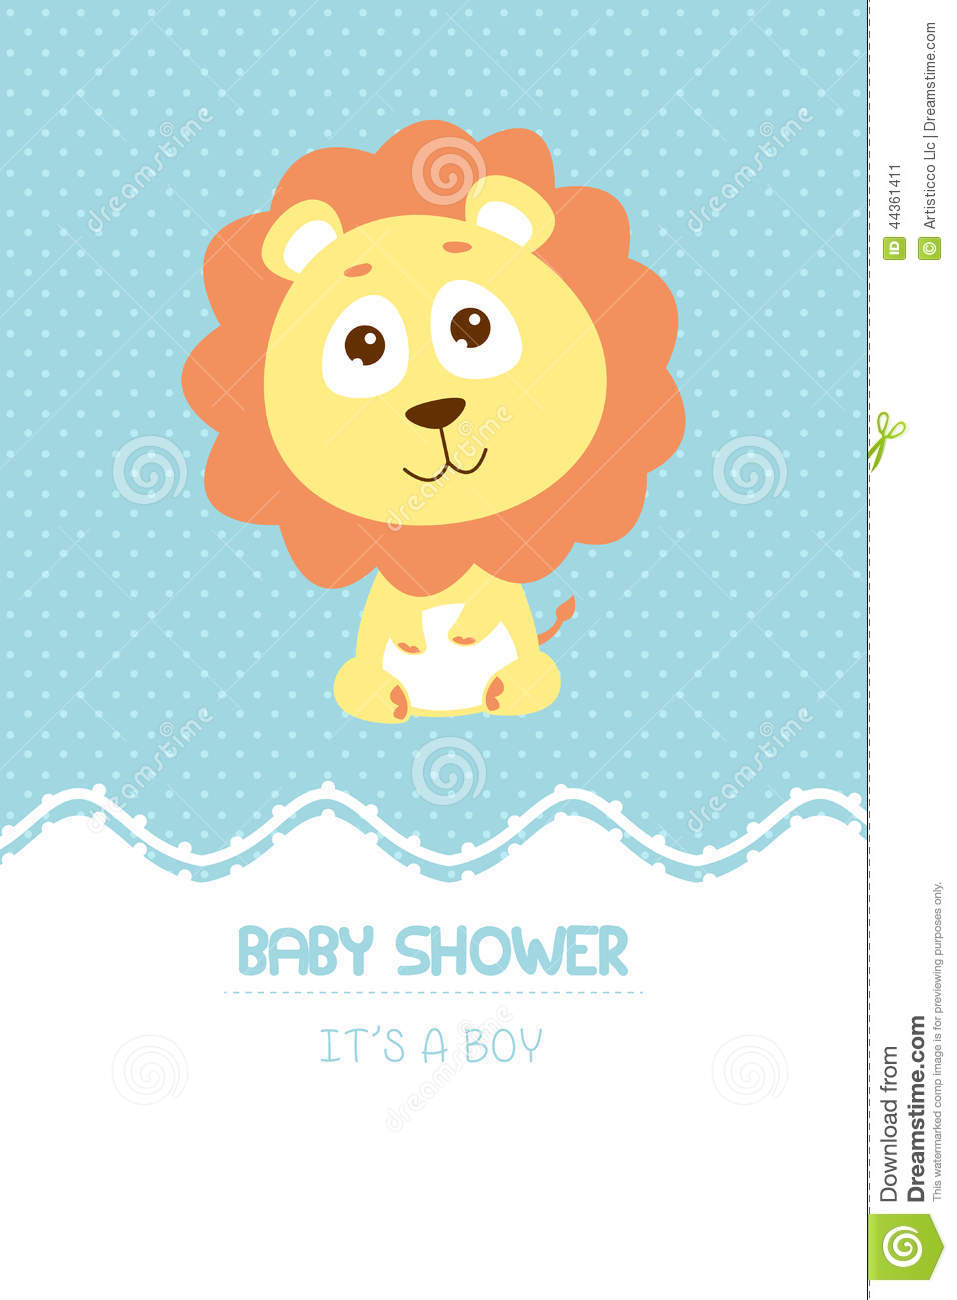 Baby shower invitation card stock vector illustration of clipart baby shower invitation card filmwisefo